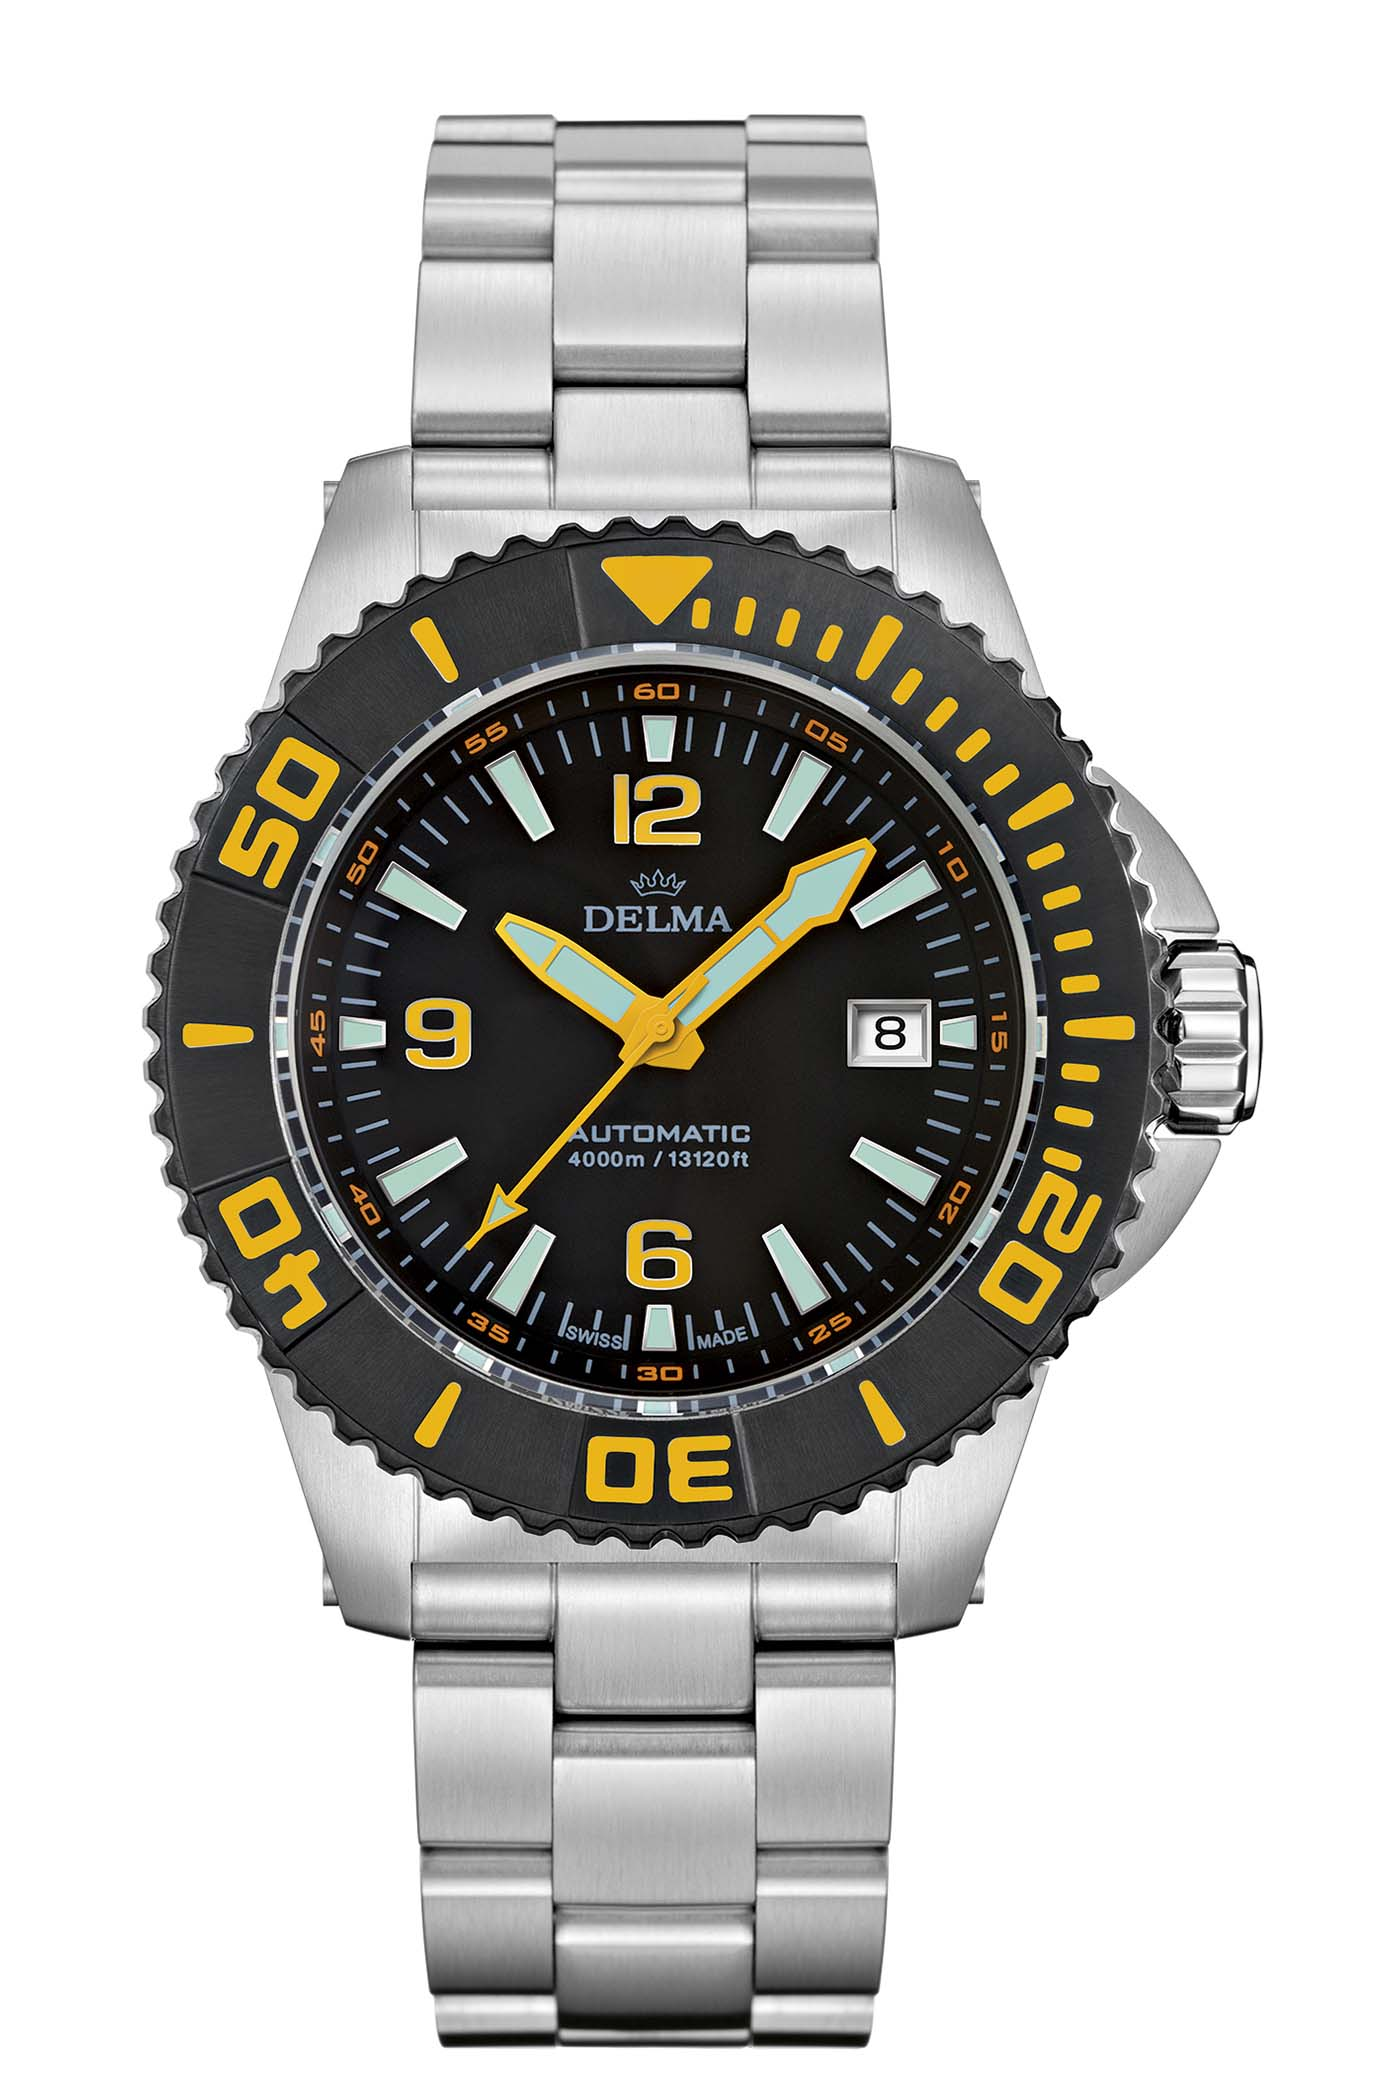 Delma Blue Shark III 4000m Water Resistant - 5